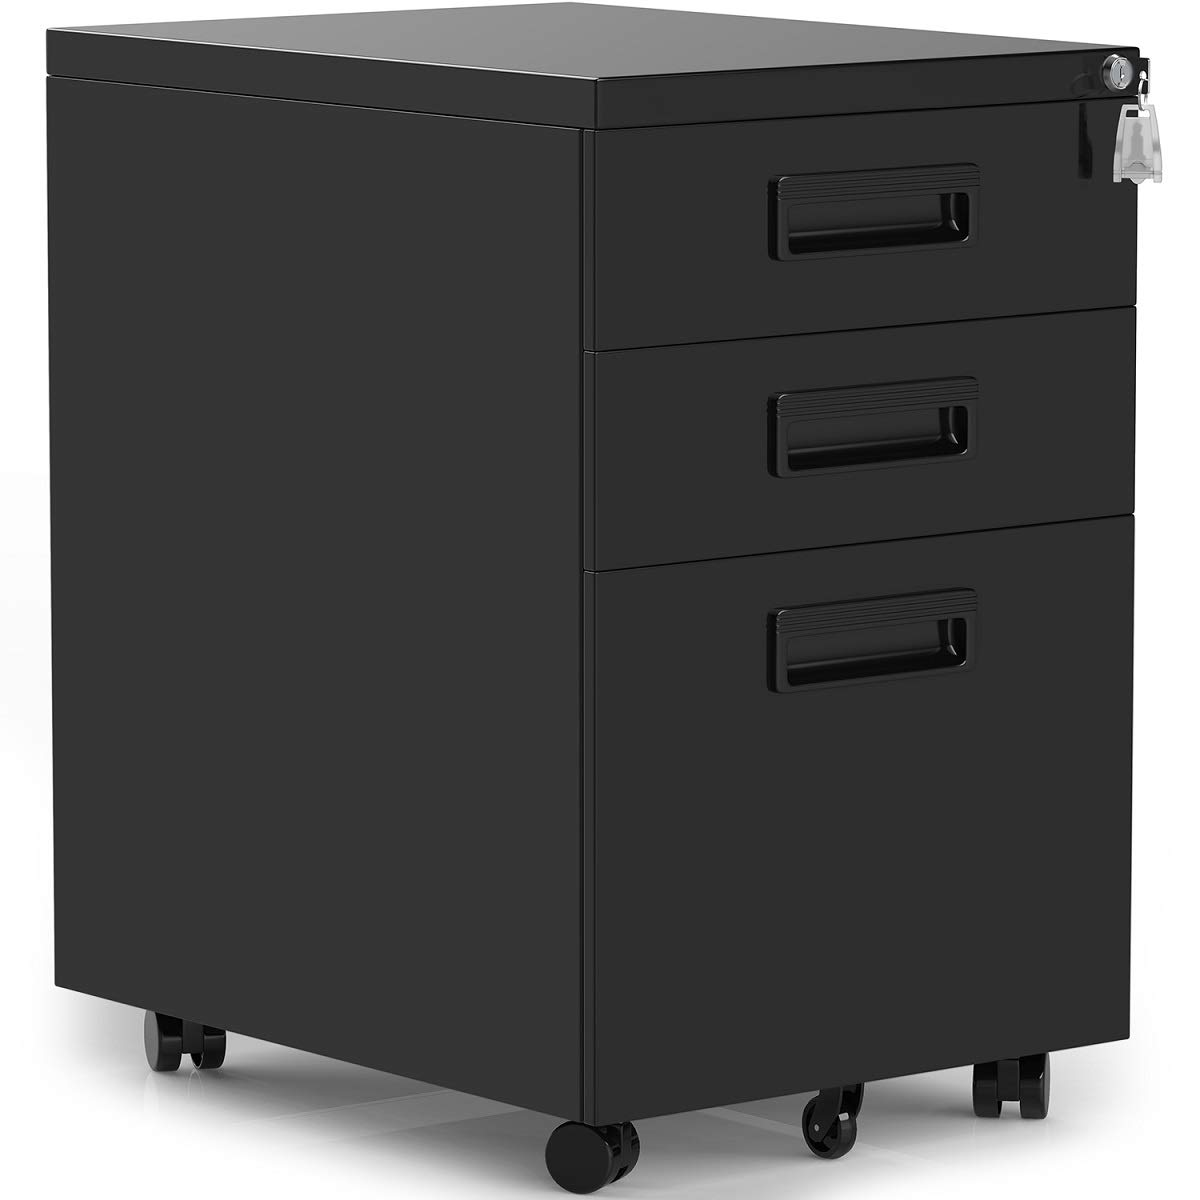 ModernLuxe 3-Drawer Mobile File Cabinet with Keys, 15.4'' x 20.5'' x 23.6'' Vertical Storage Unit (Black with Plastic Handle)